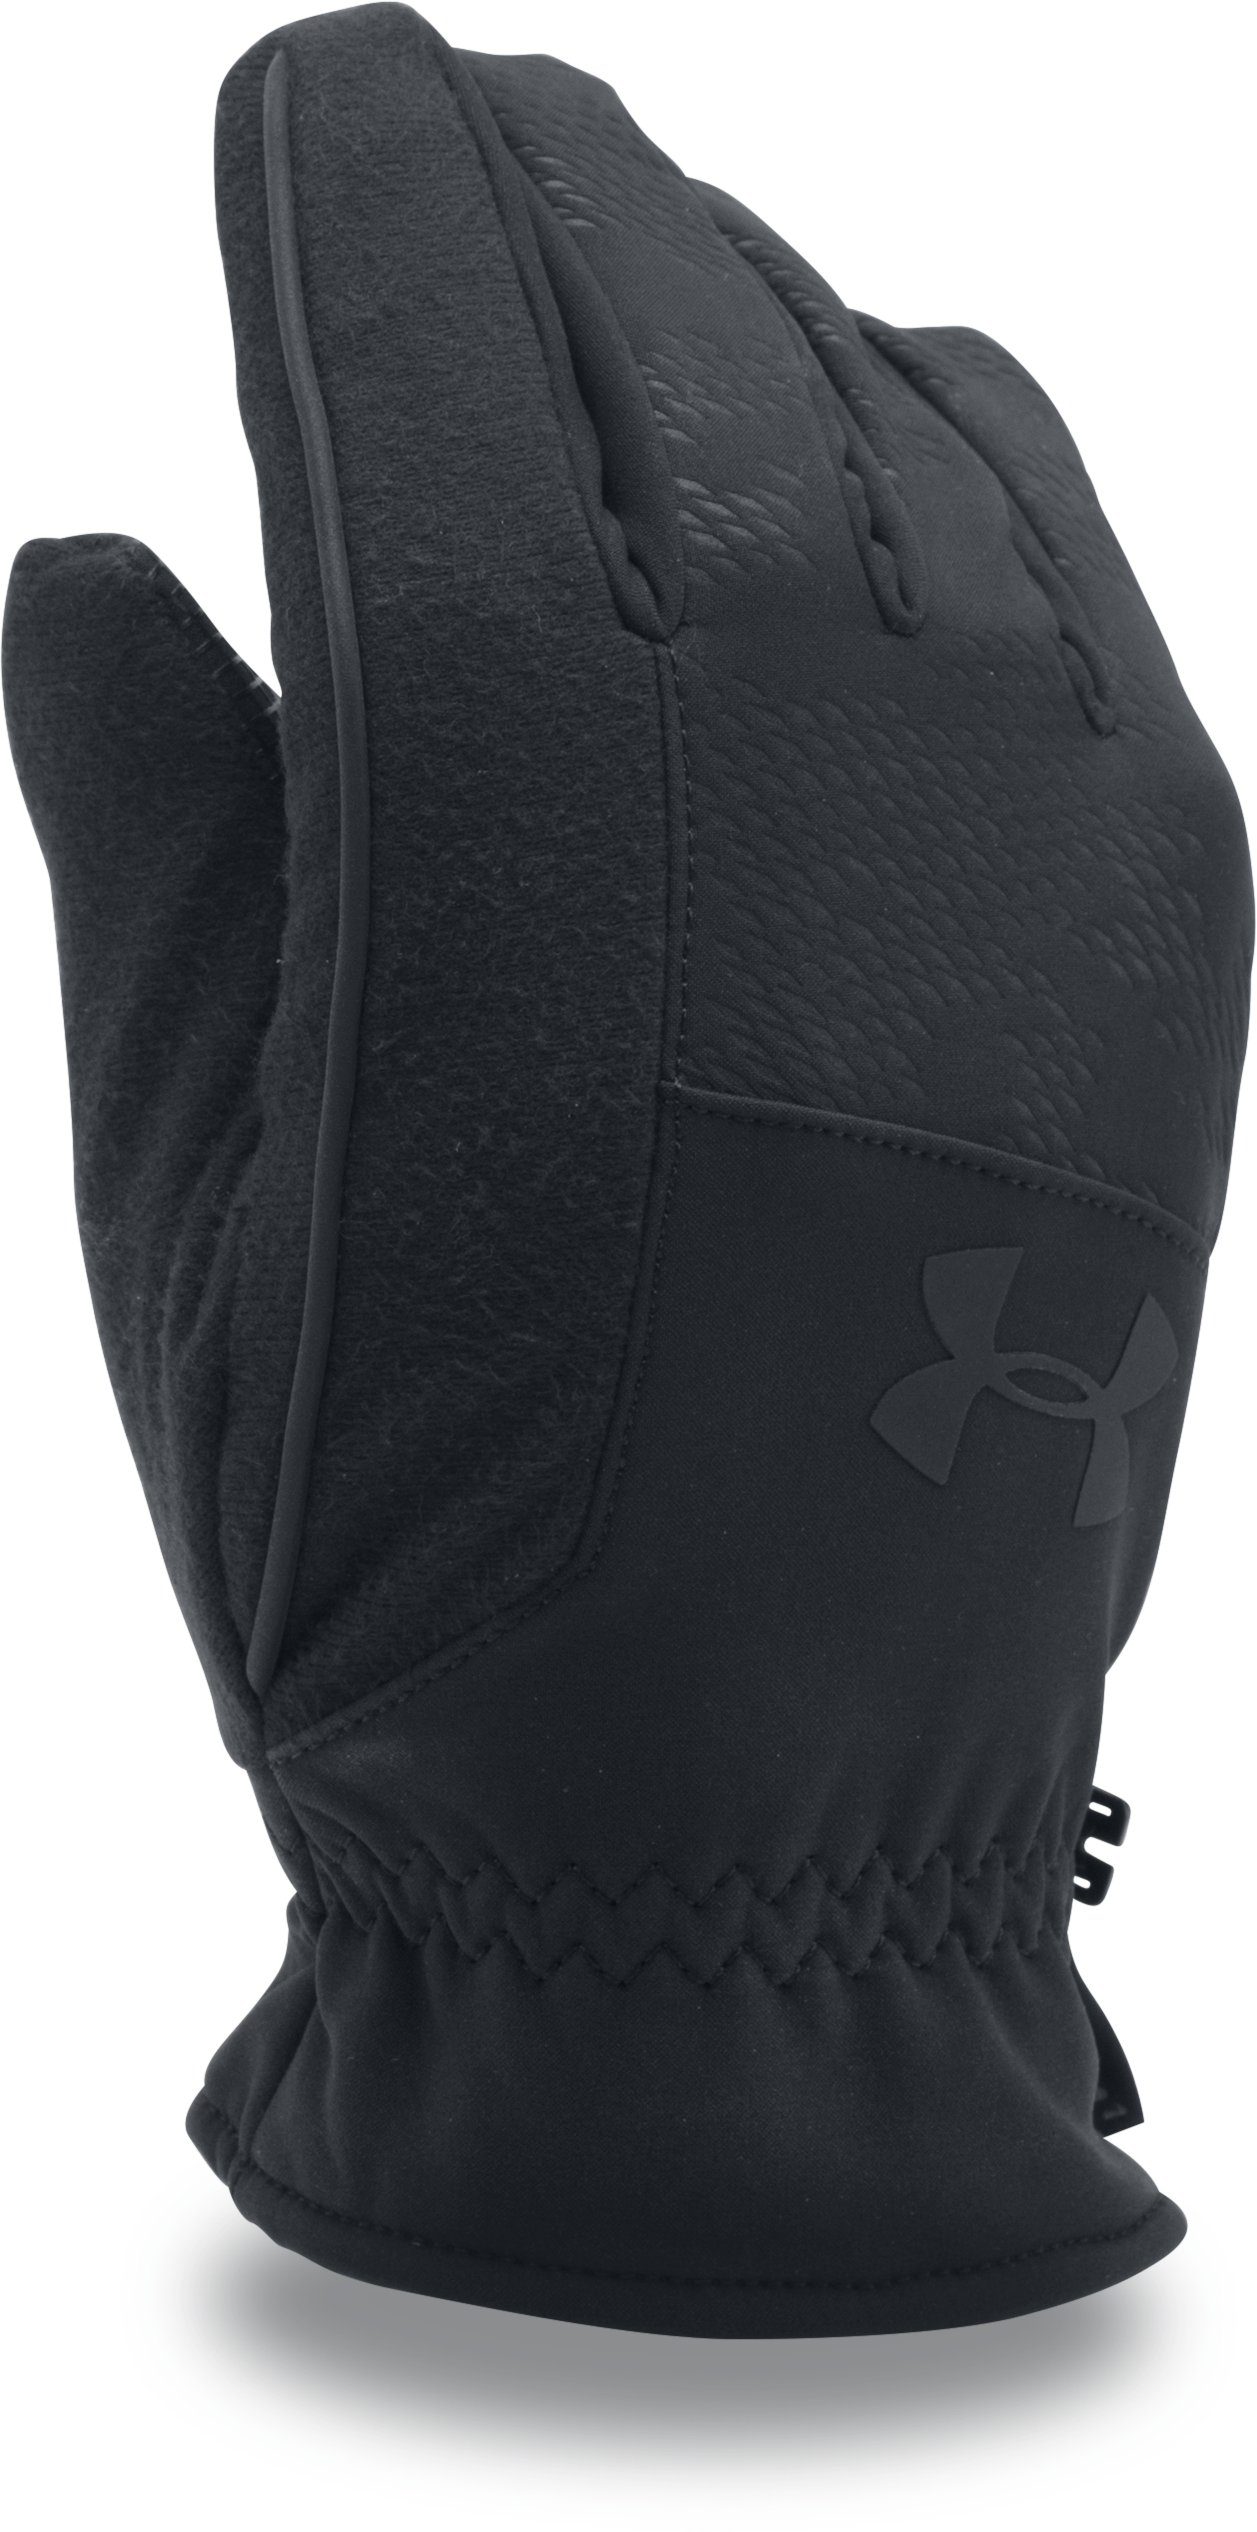 Men's UA No Breaks Softshell Gloves, Black